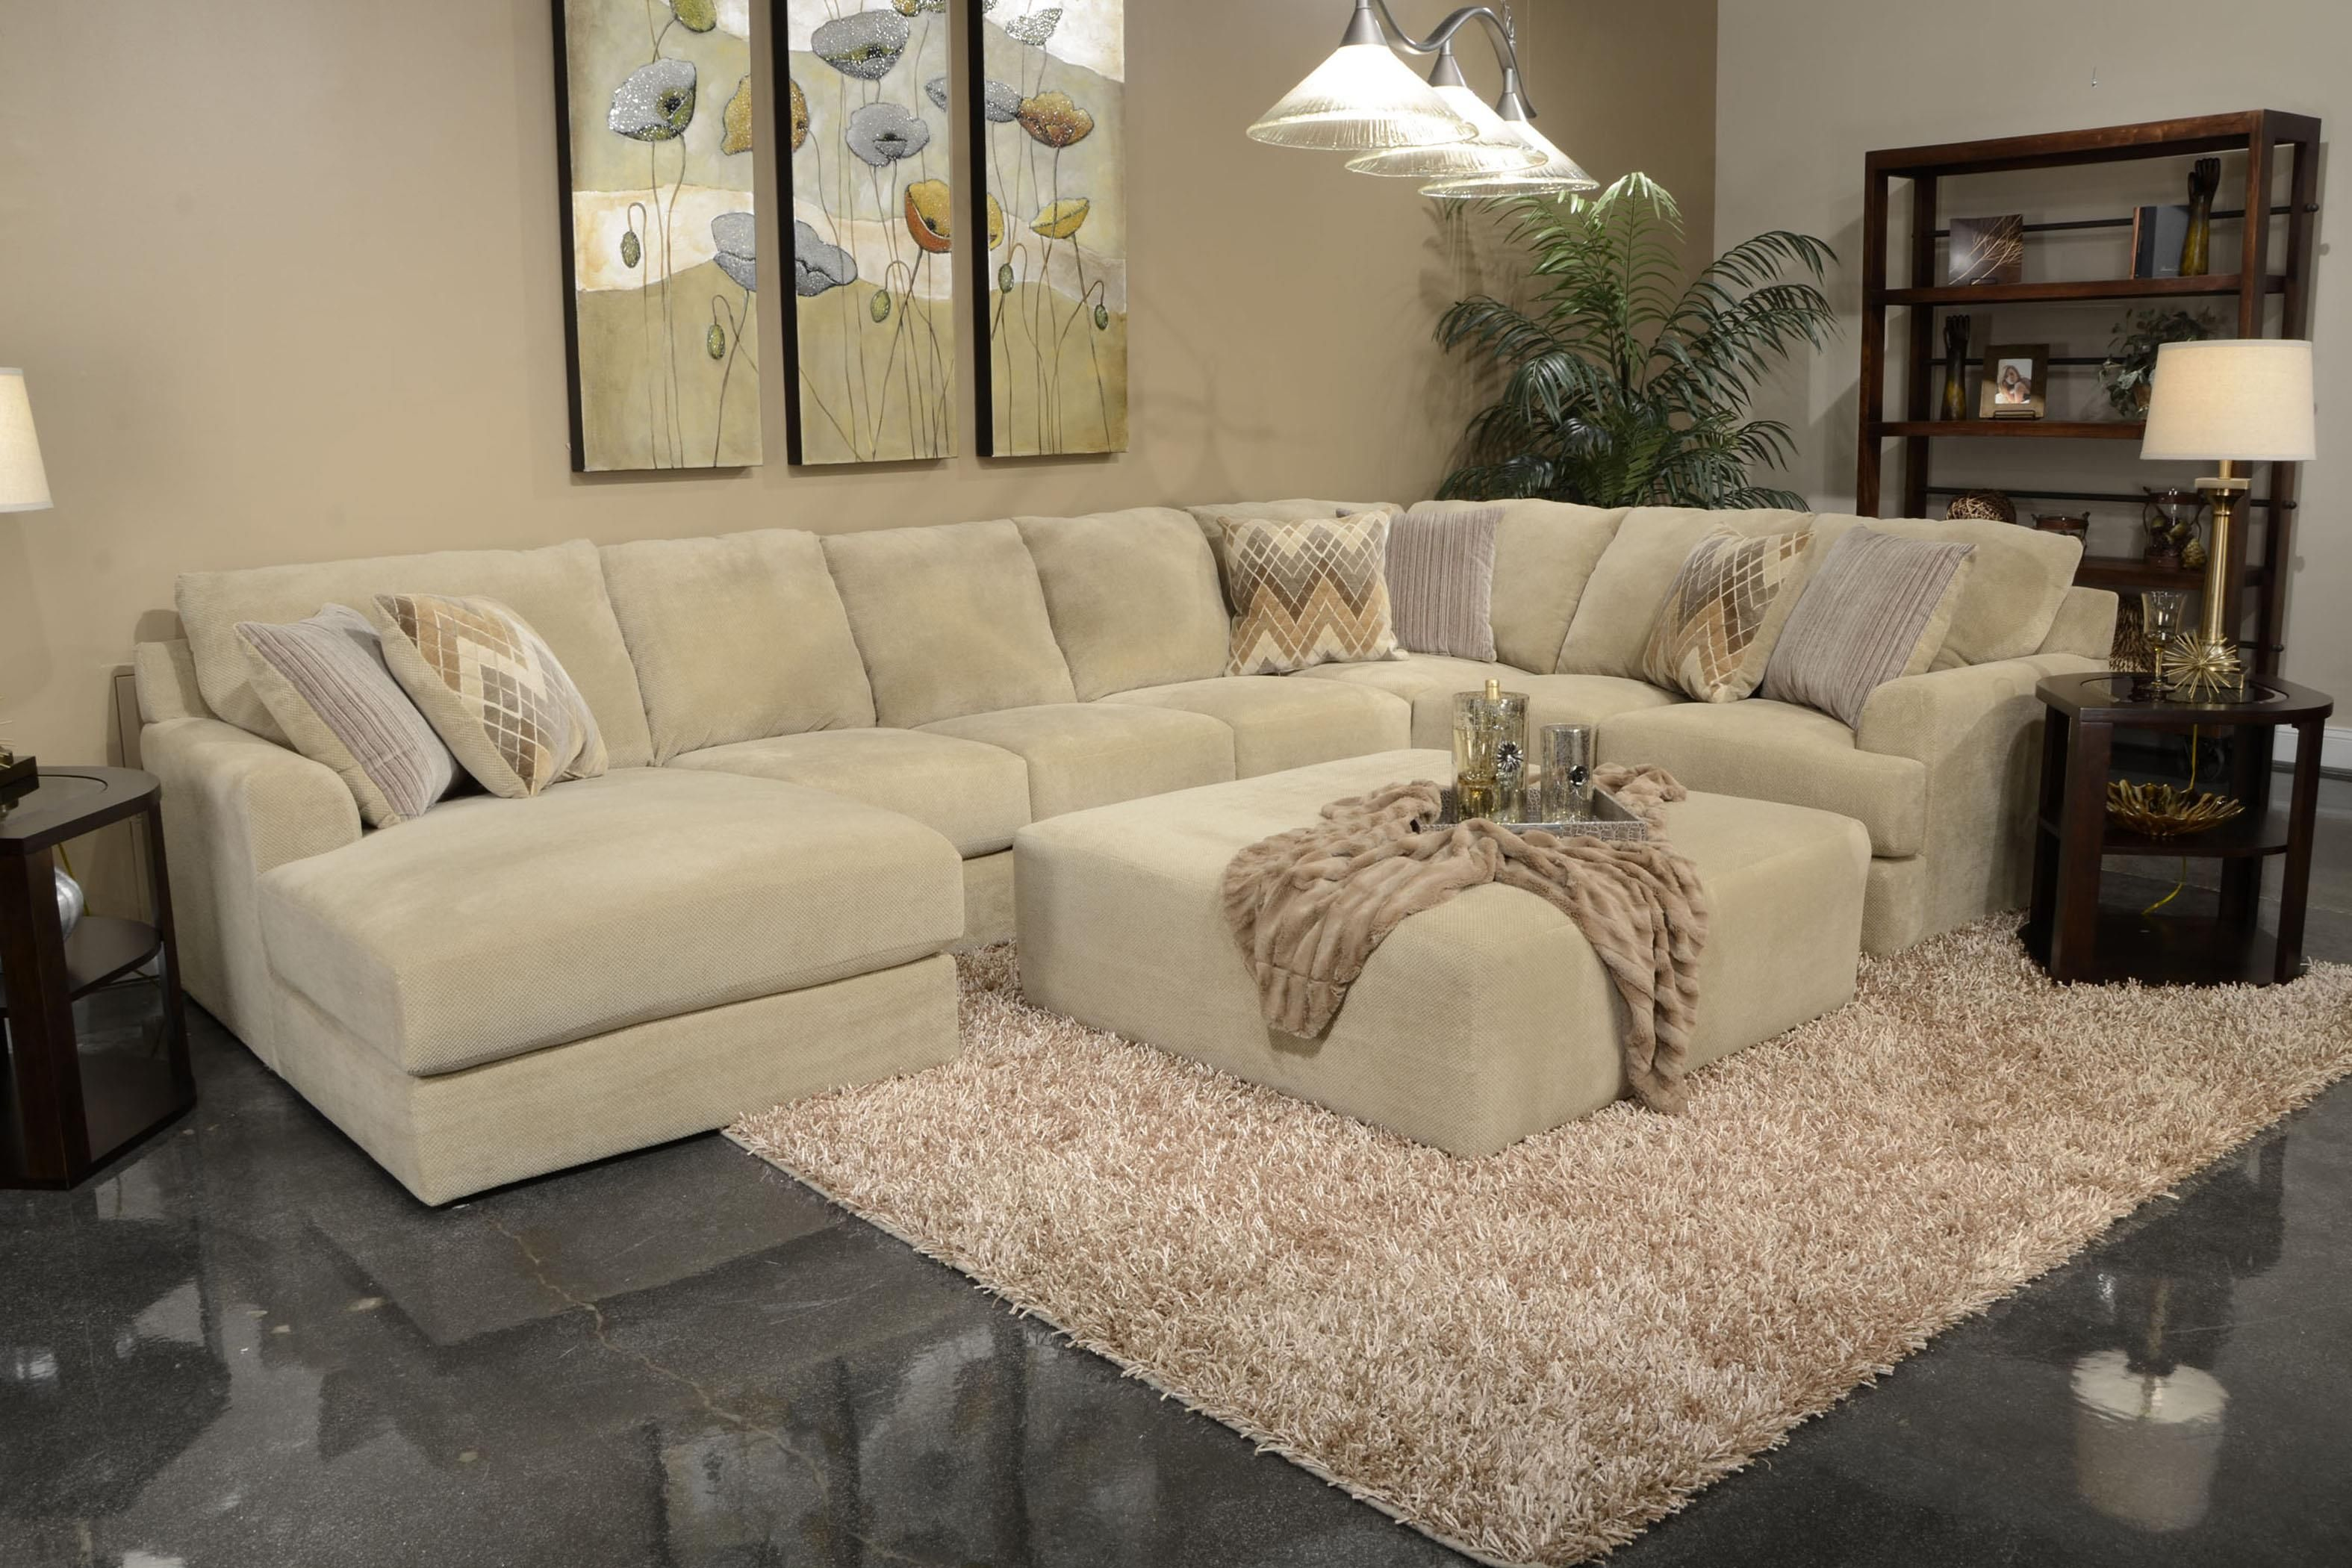 Six Seat Sectional Sofa By Jackson Furniture Wolf And Gardiner